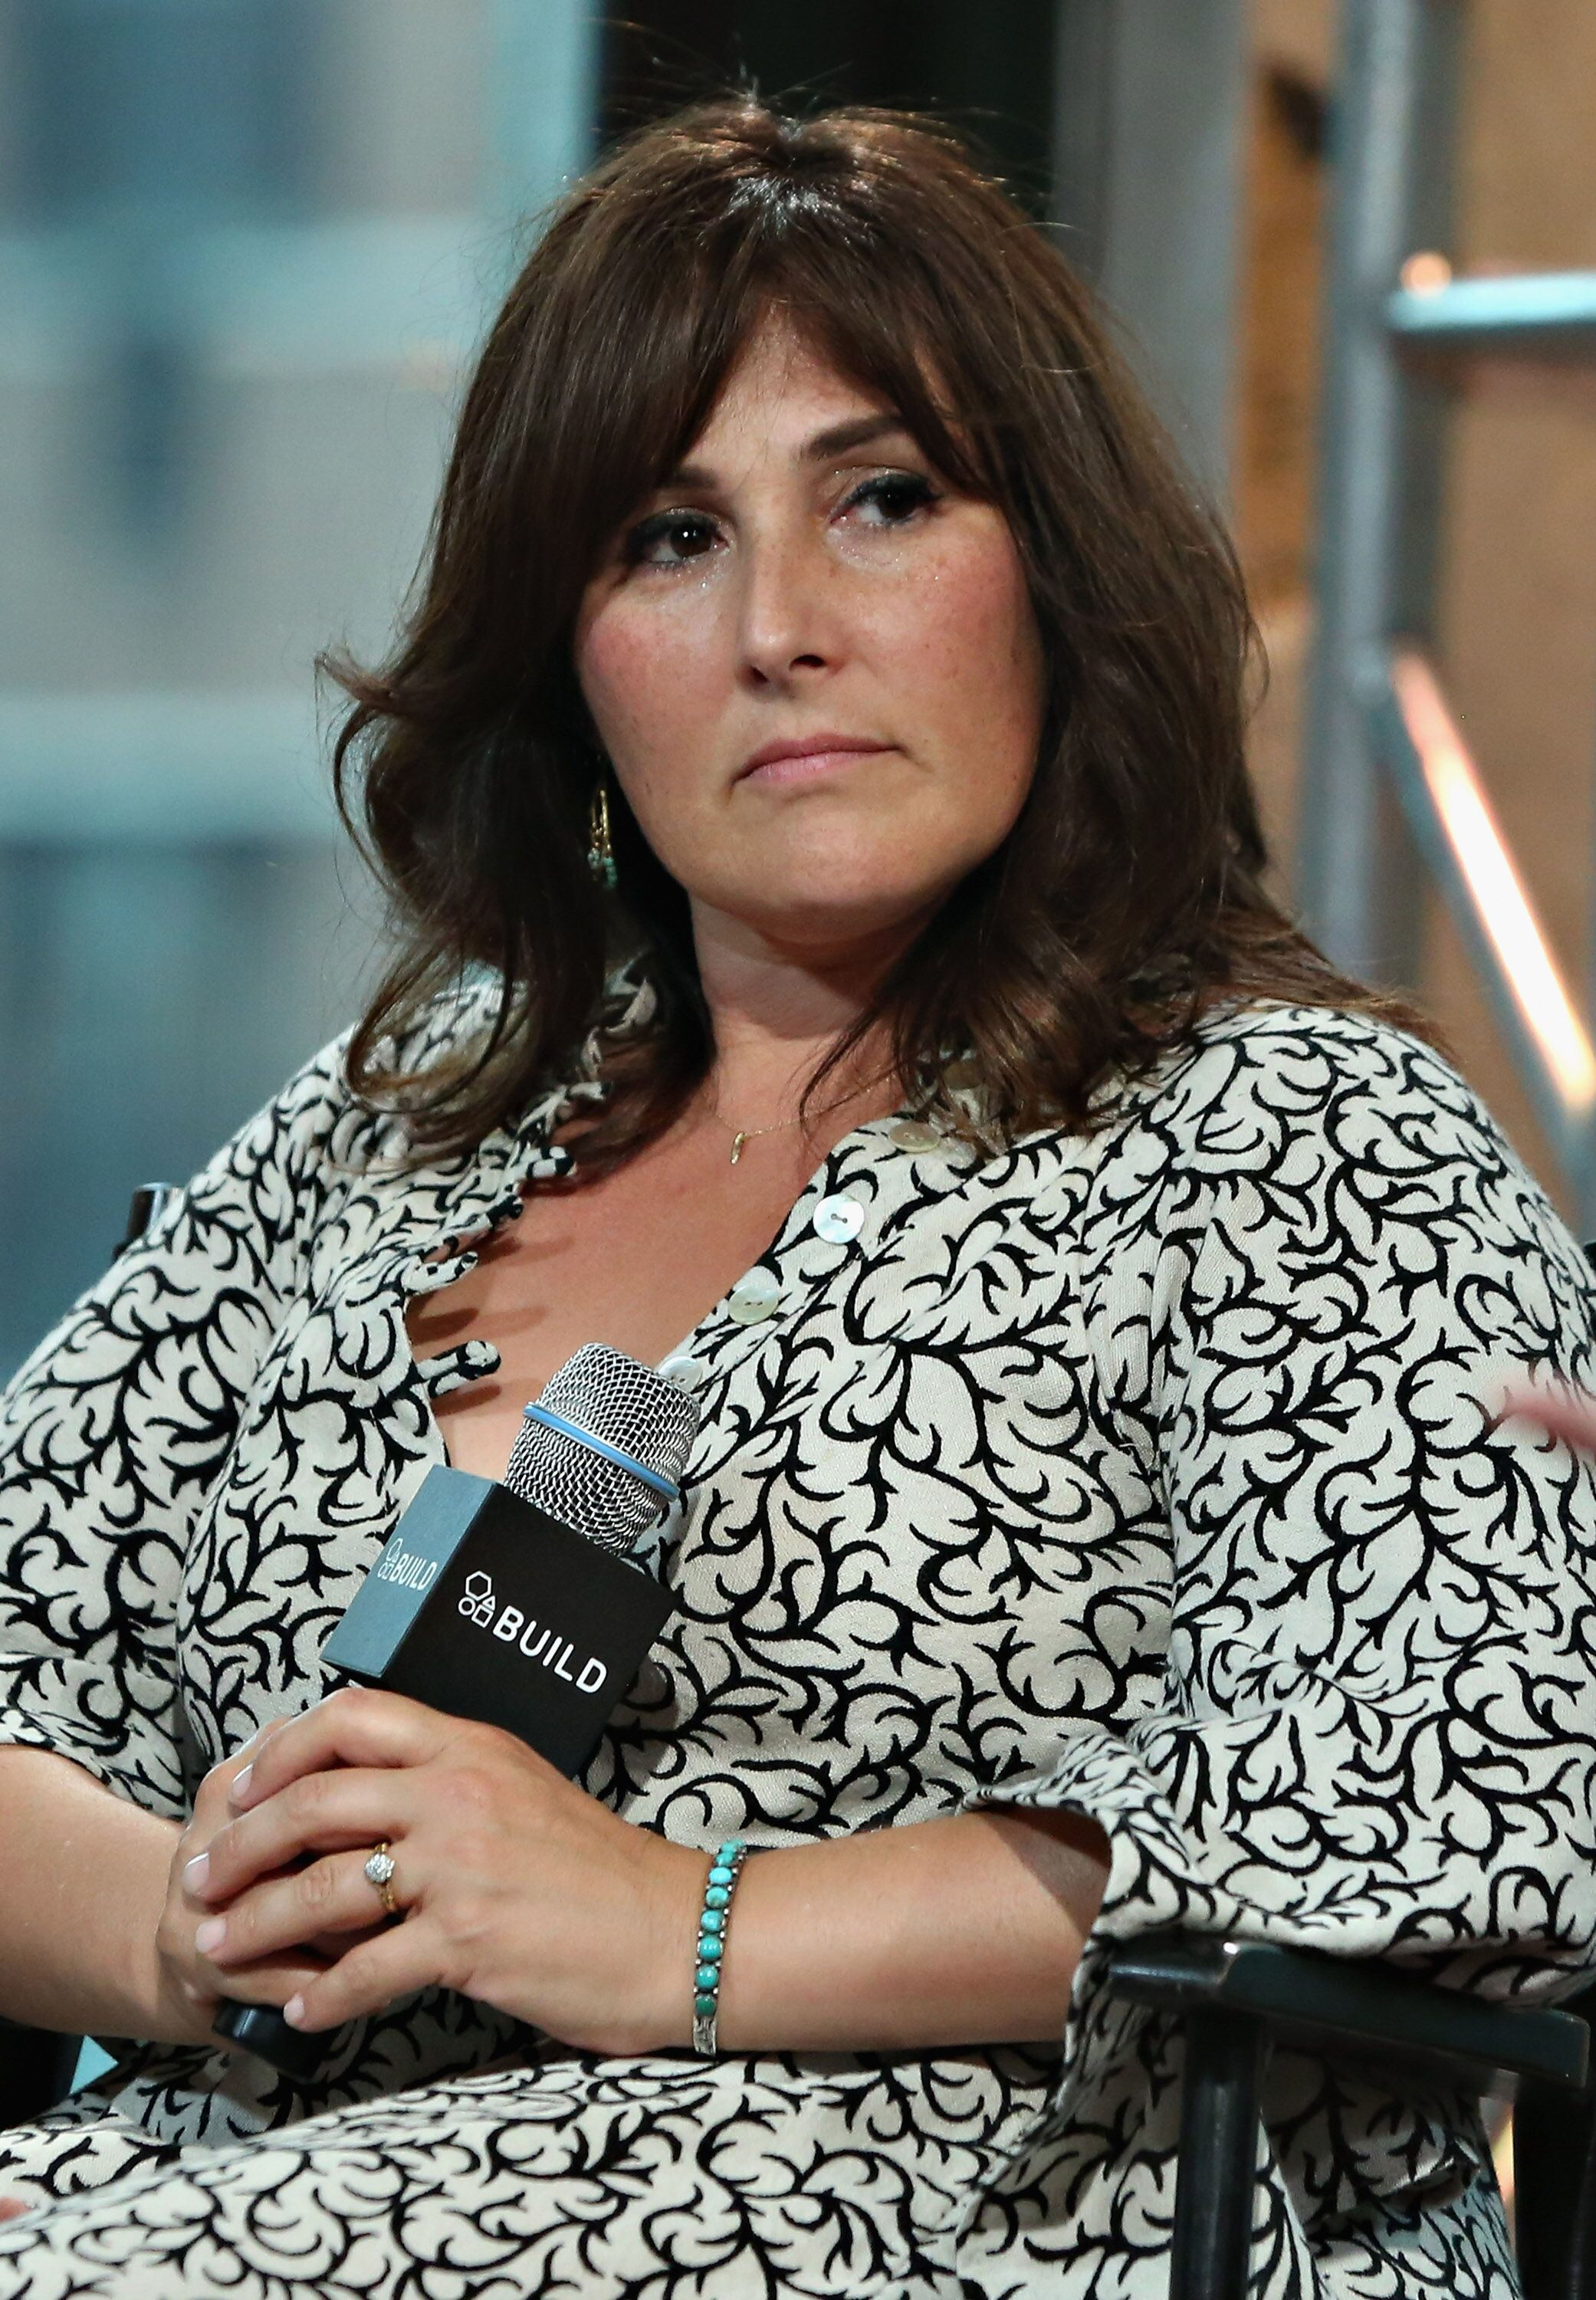 Ricki Lake attends AOL Build to discuss 'Mama Sherpas' at AOL Studios on August 10, 2015 in New York City. | Source: Getty Images